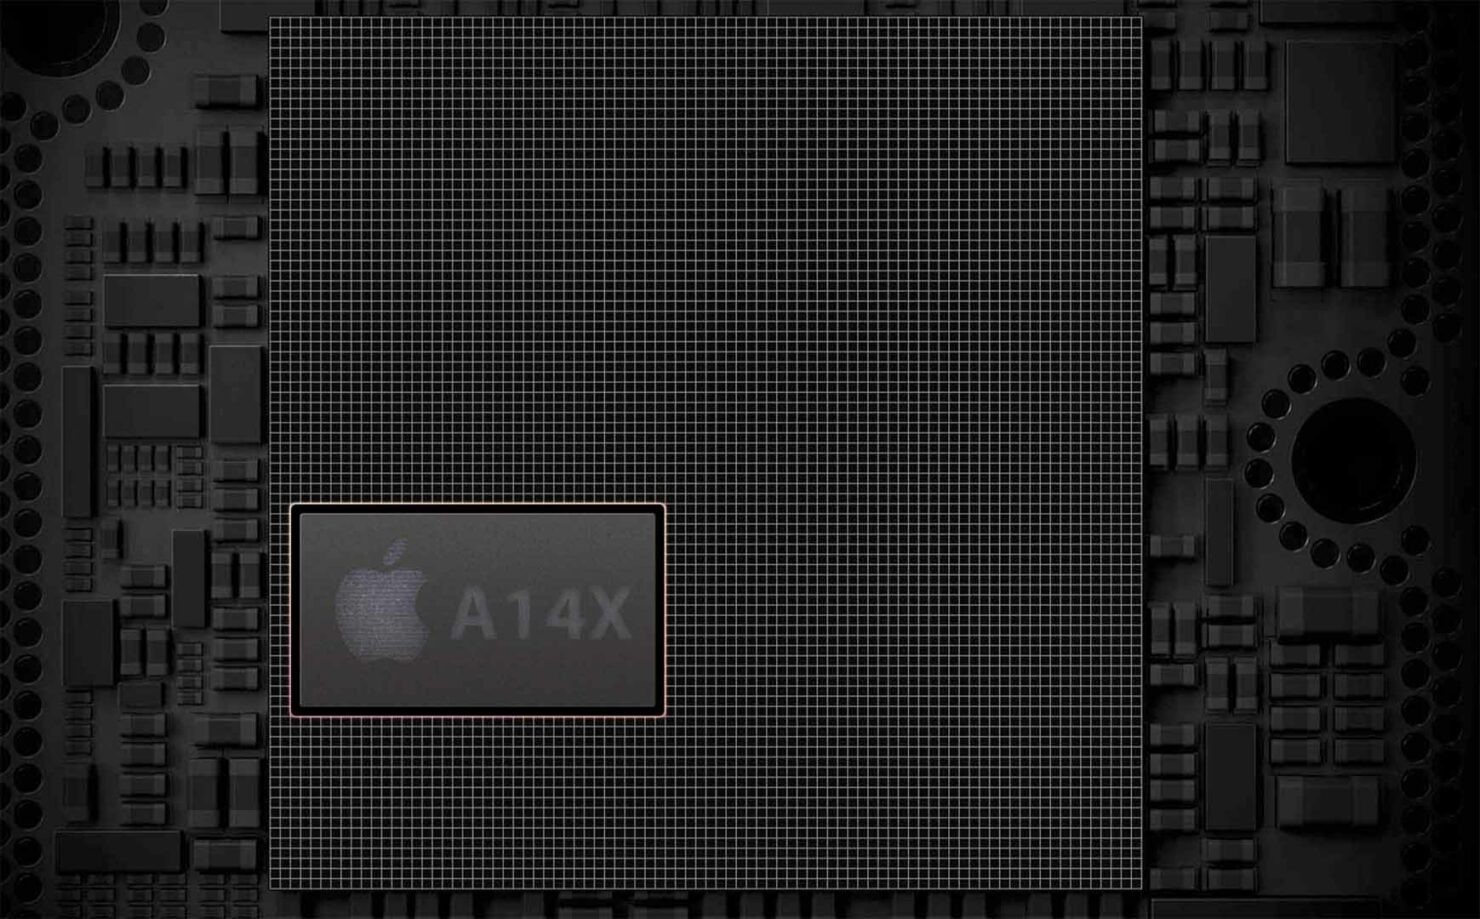 A14X Bionic Performance Based on A12 Bionic, A12Z Bionic Difference Puts It on Par With a 16-inch MacBook Pro With 8-Core CPU